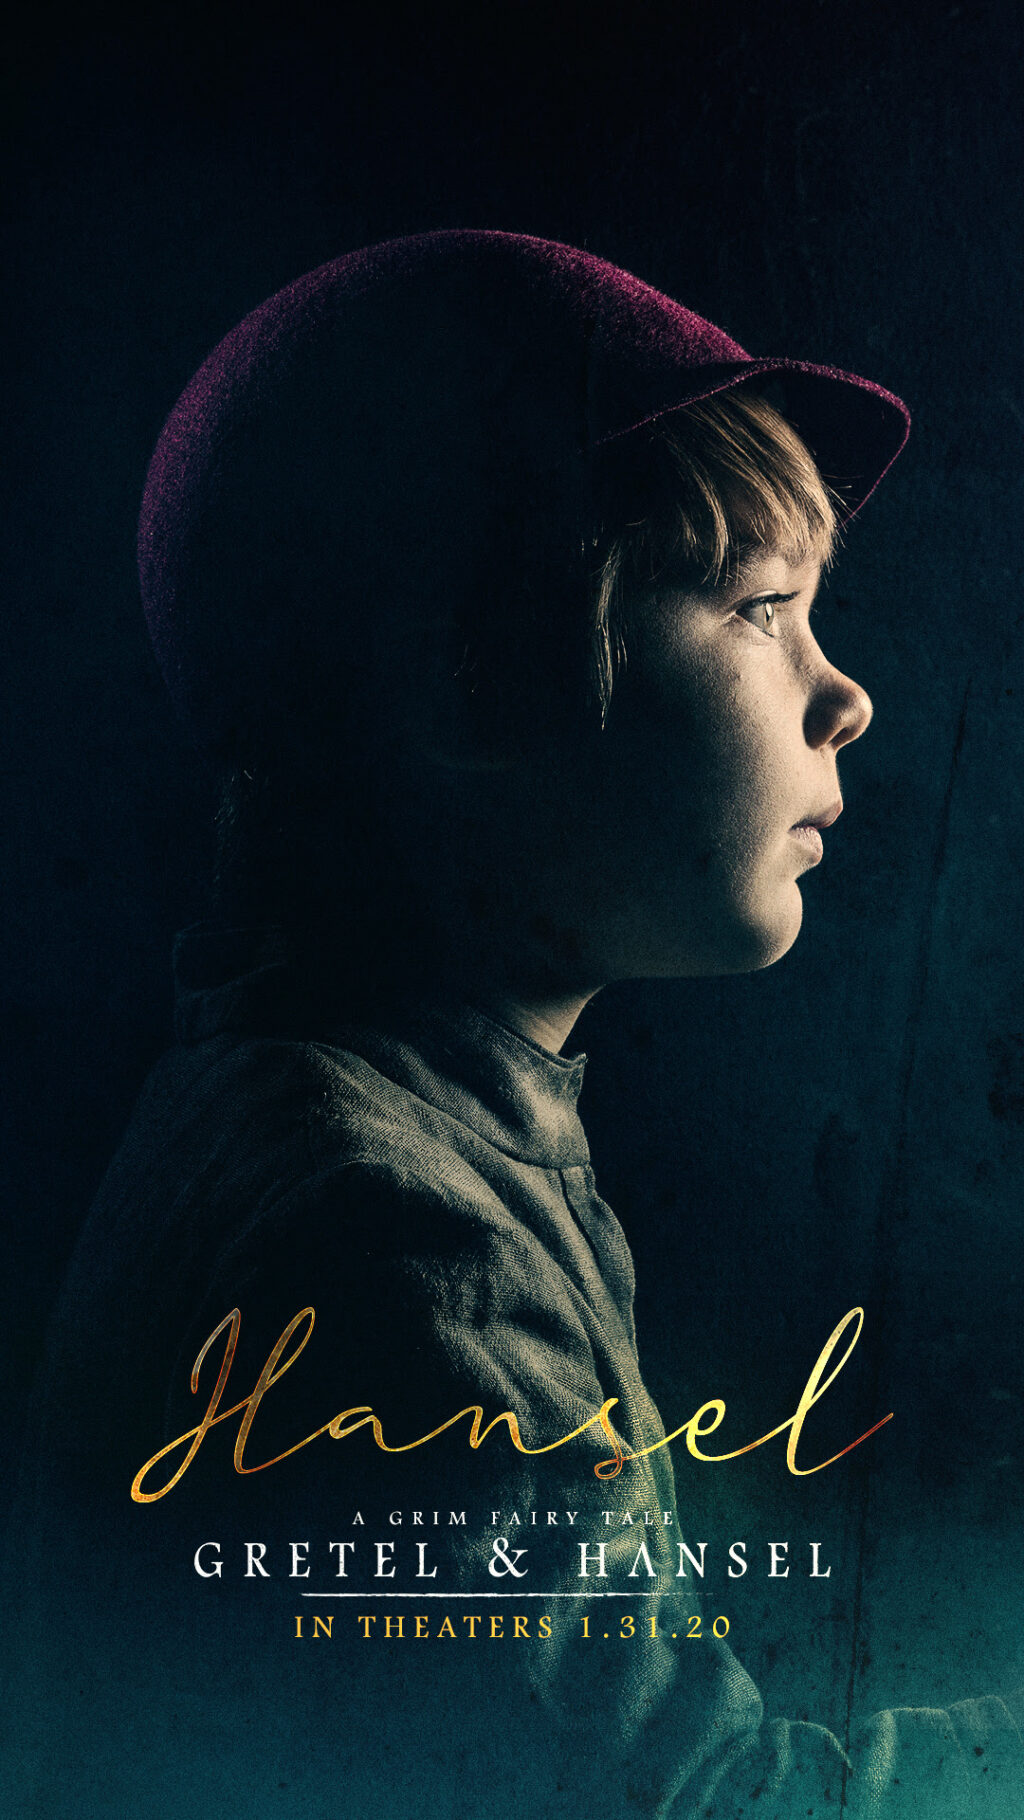 GH 2 1024x1820 - Check Out this Quartet of New Character Posters for GRETEL & HANSEL